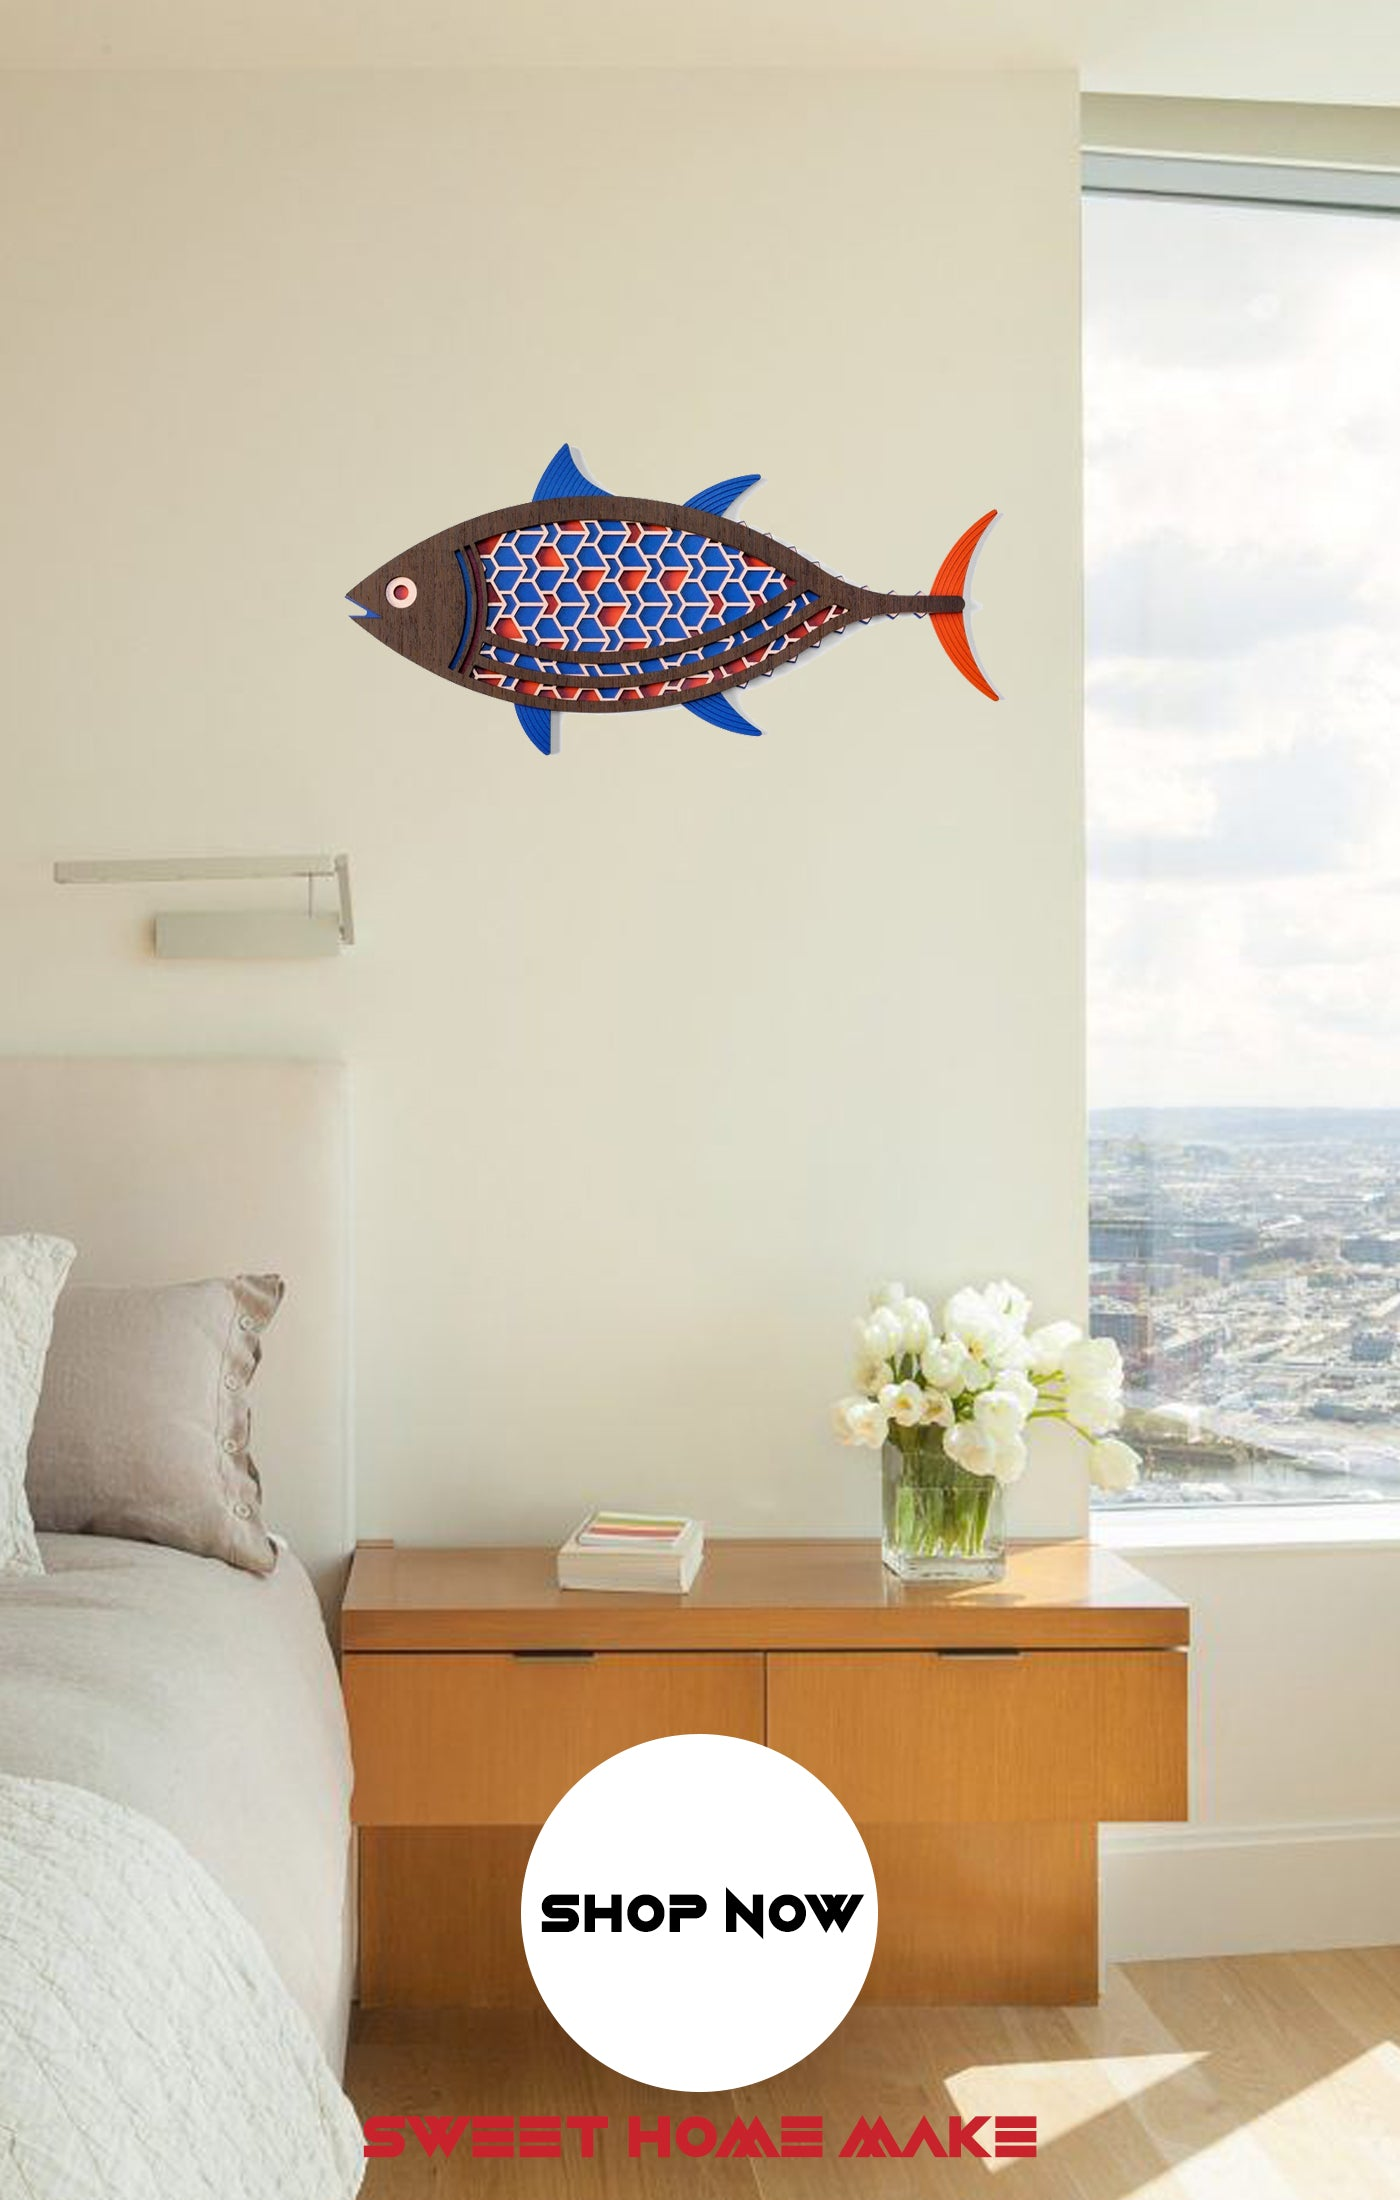 Wooden Fish Wall Art at the Bedroom Wall Decor